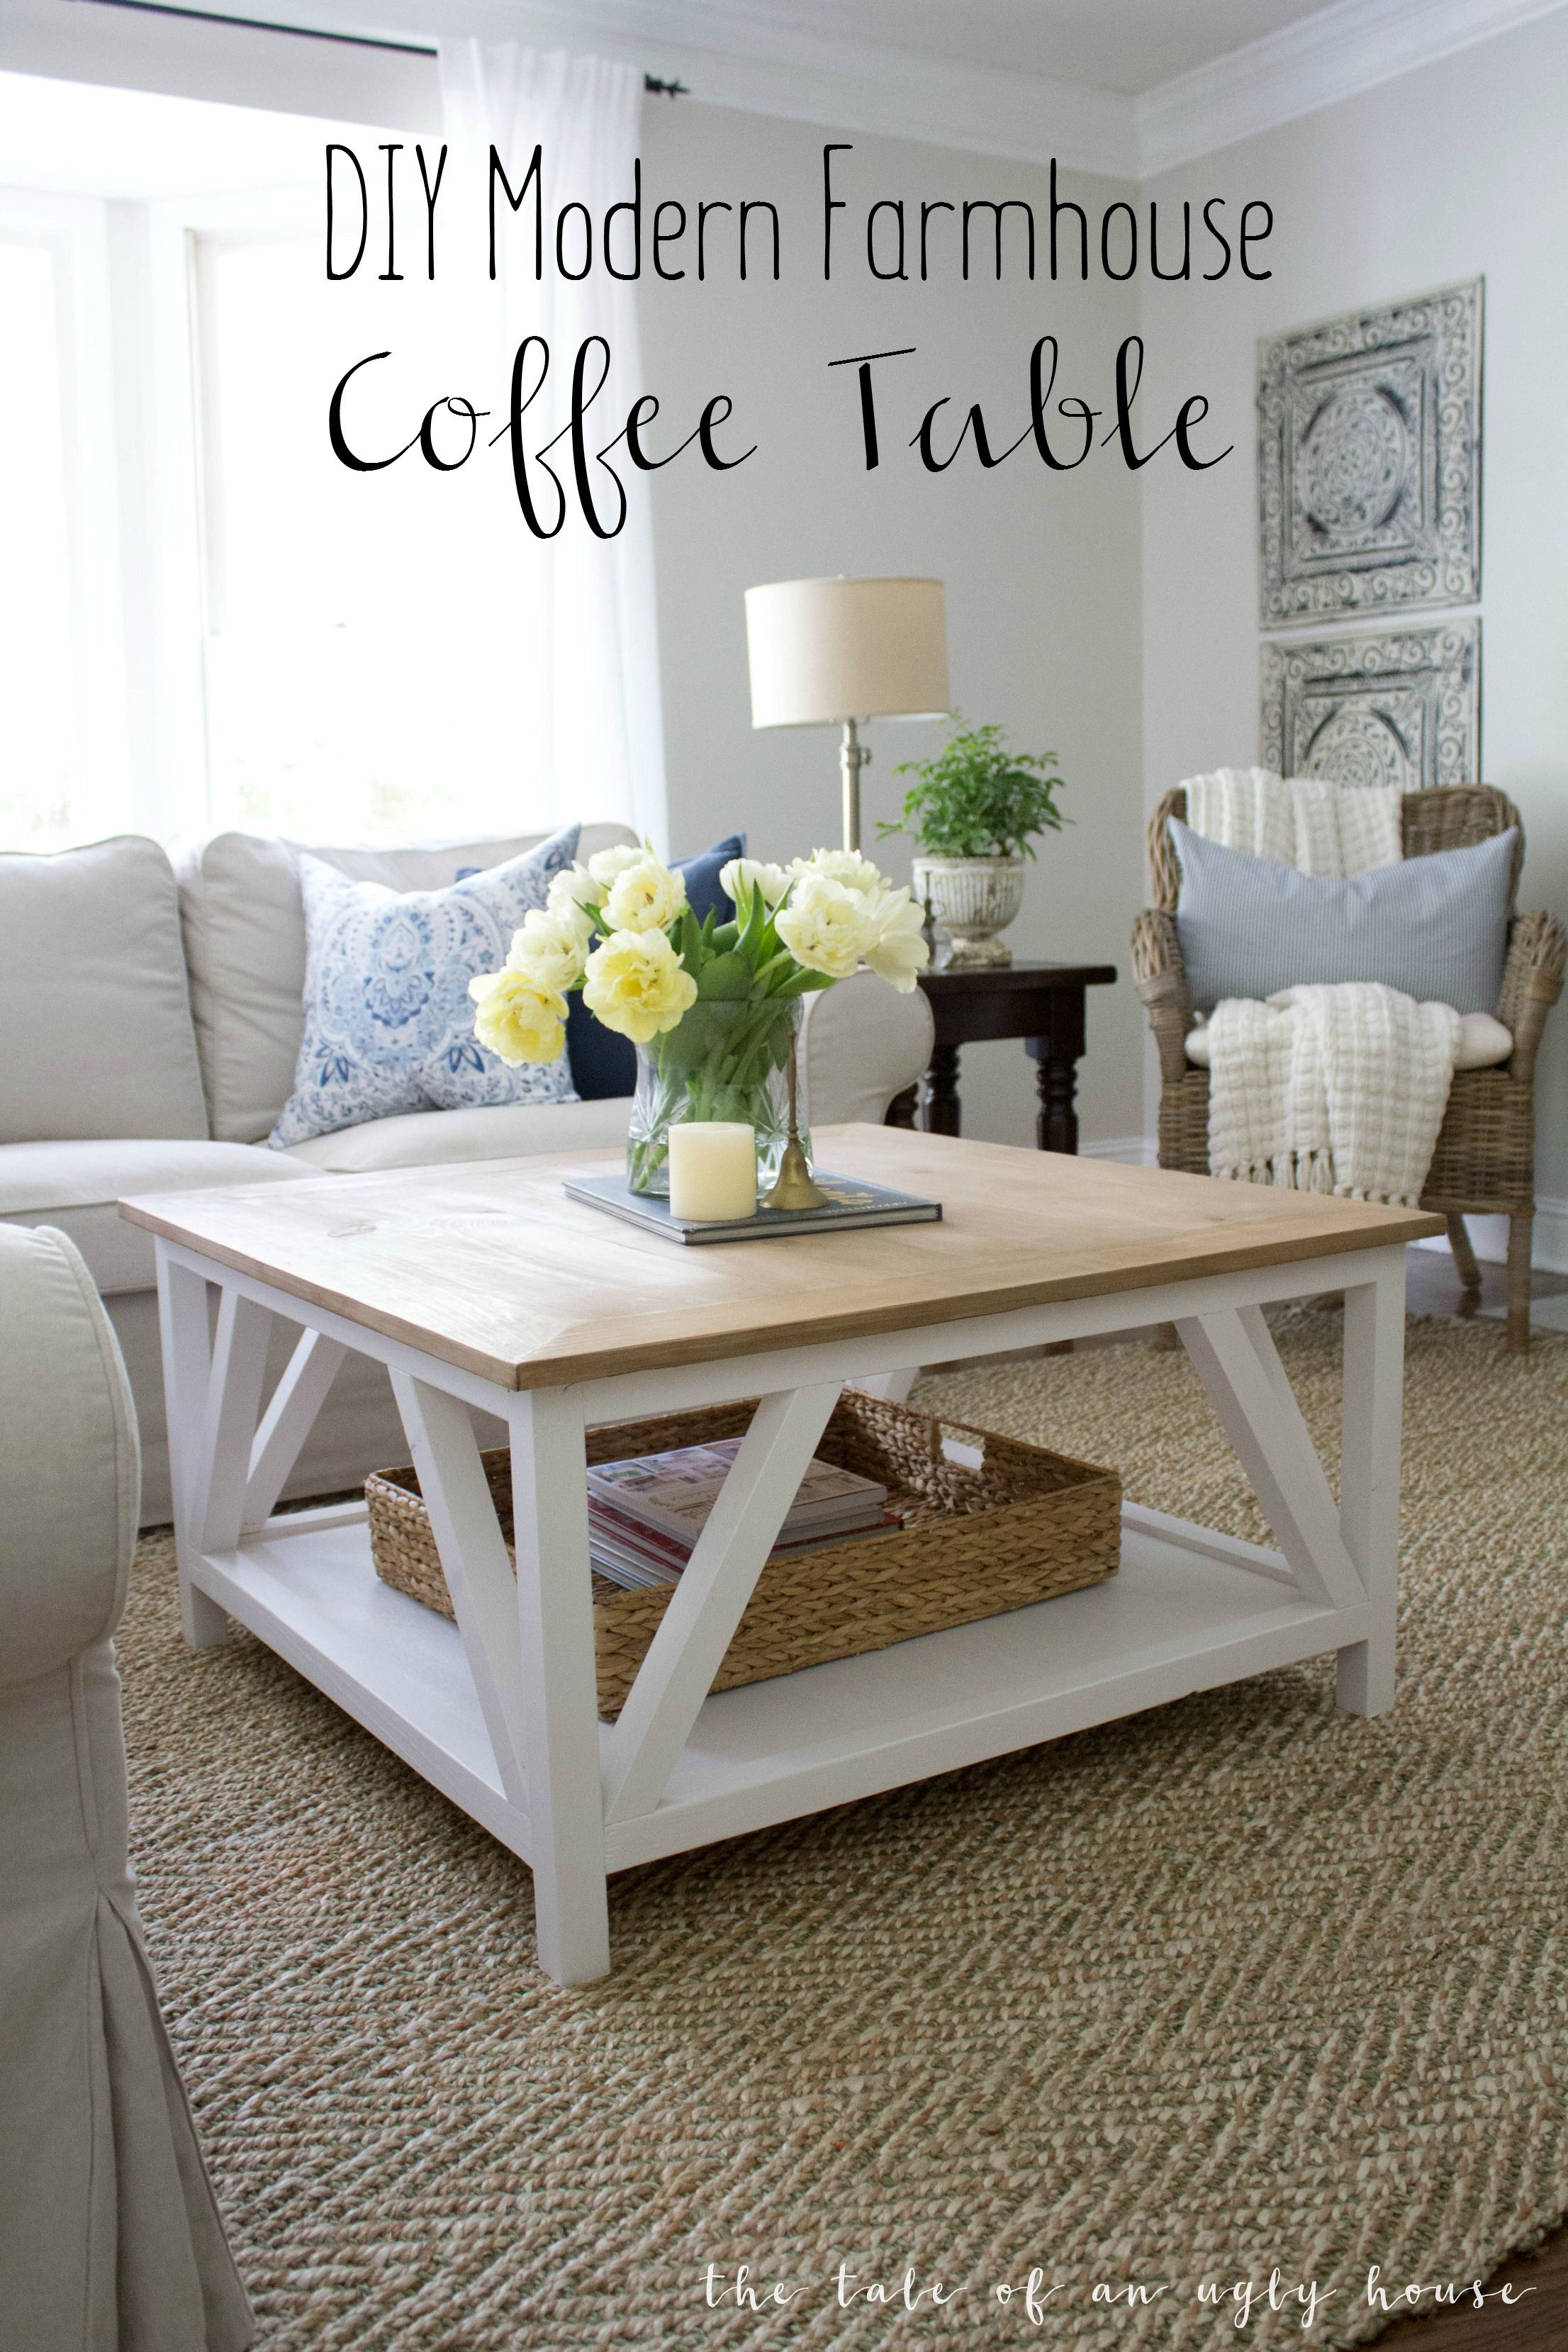 How to build a diy modern farmhouse coffee table classic square how to build a diy modern farmhouse coffee table classic square coffee table with painted geotapseo Gallery